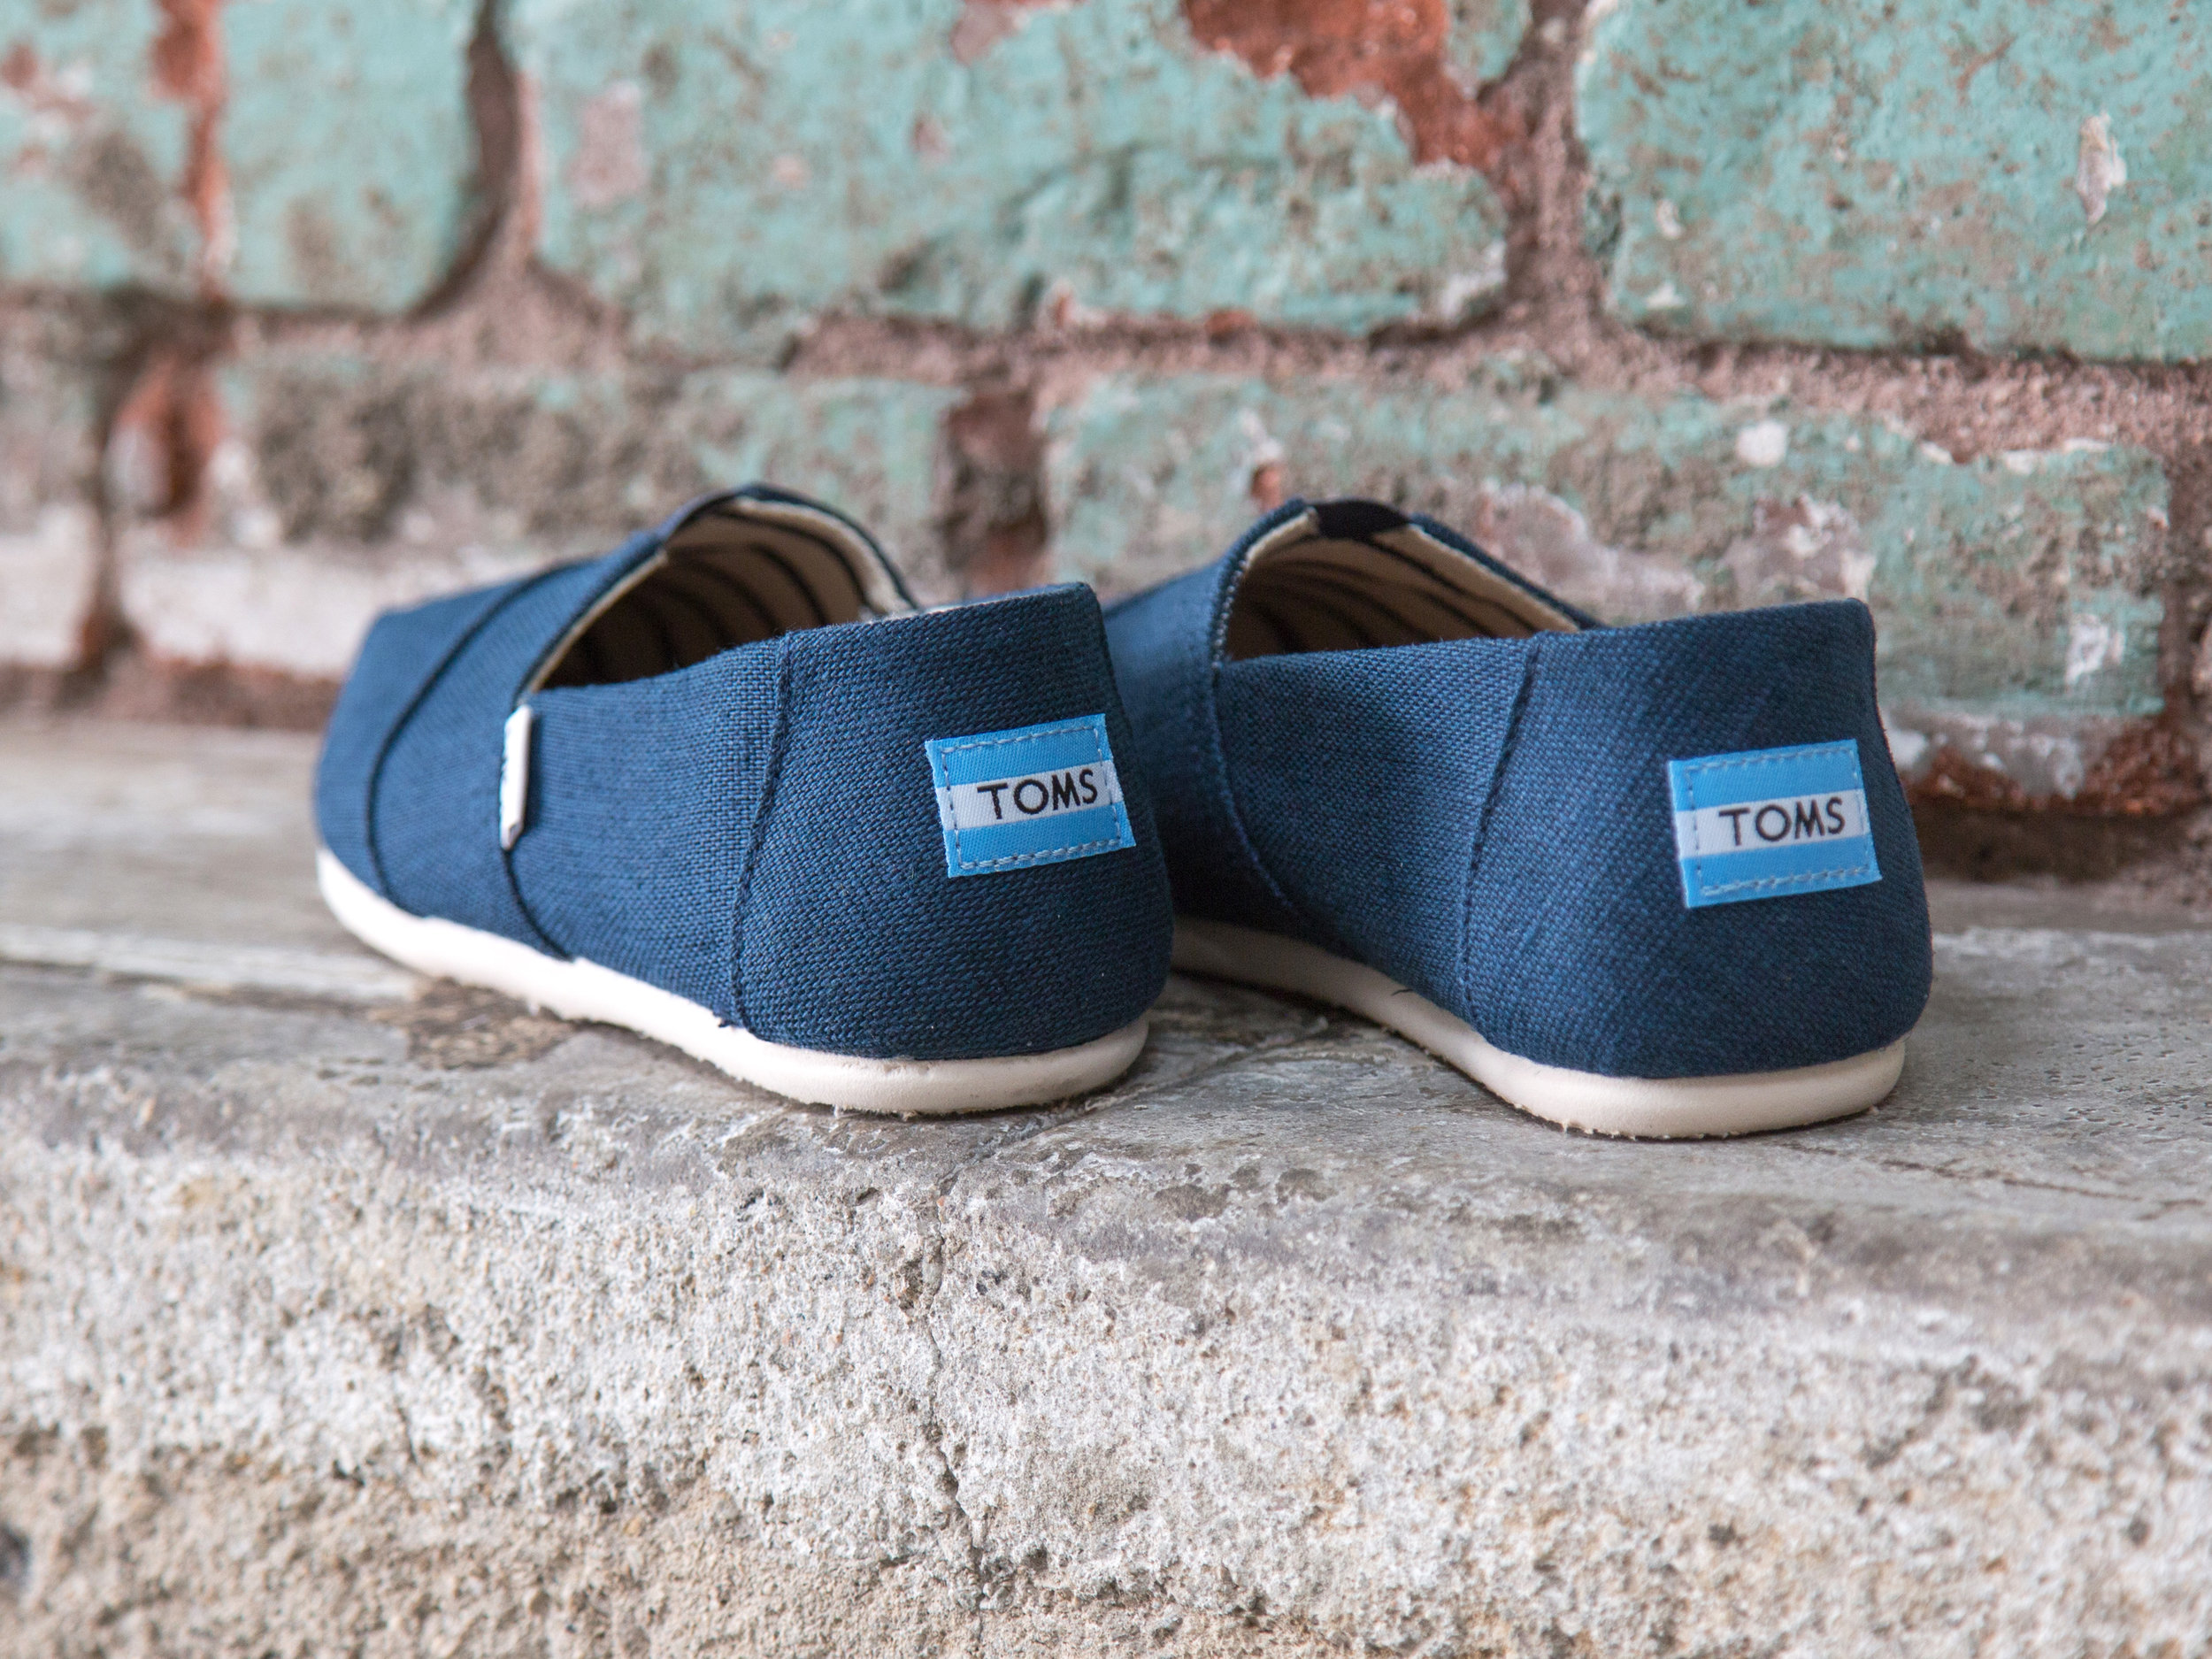 4 - Toms Alpargata Heritage Canvas in Majolica Blue is the classic silhouette in a tempting new hue.